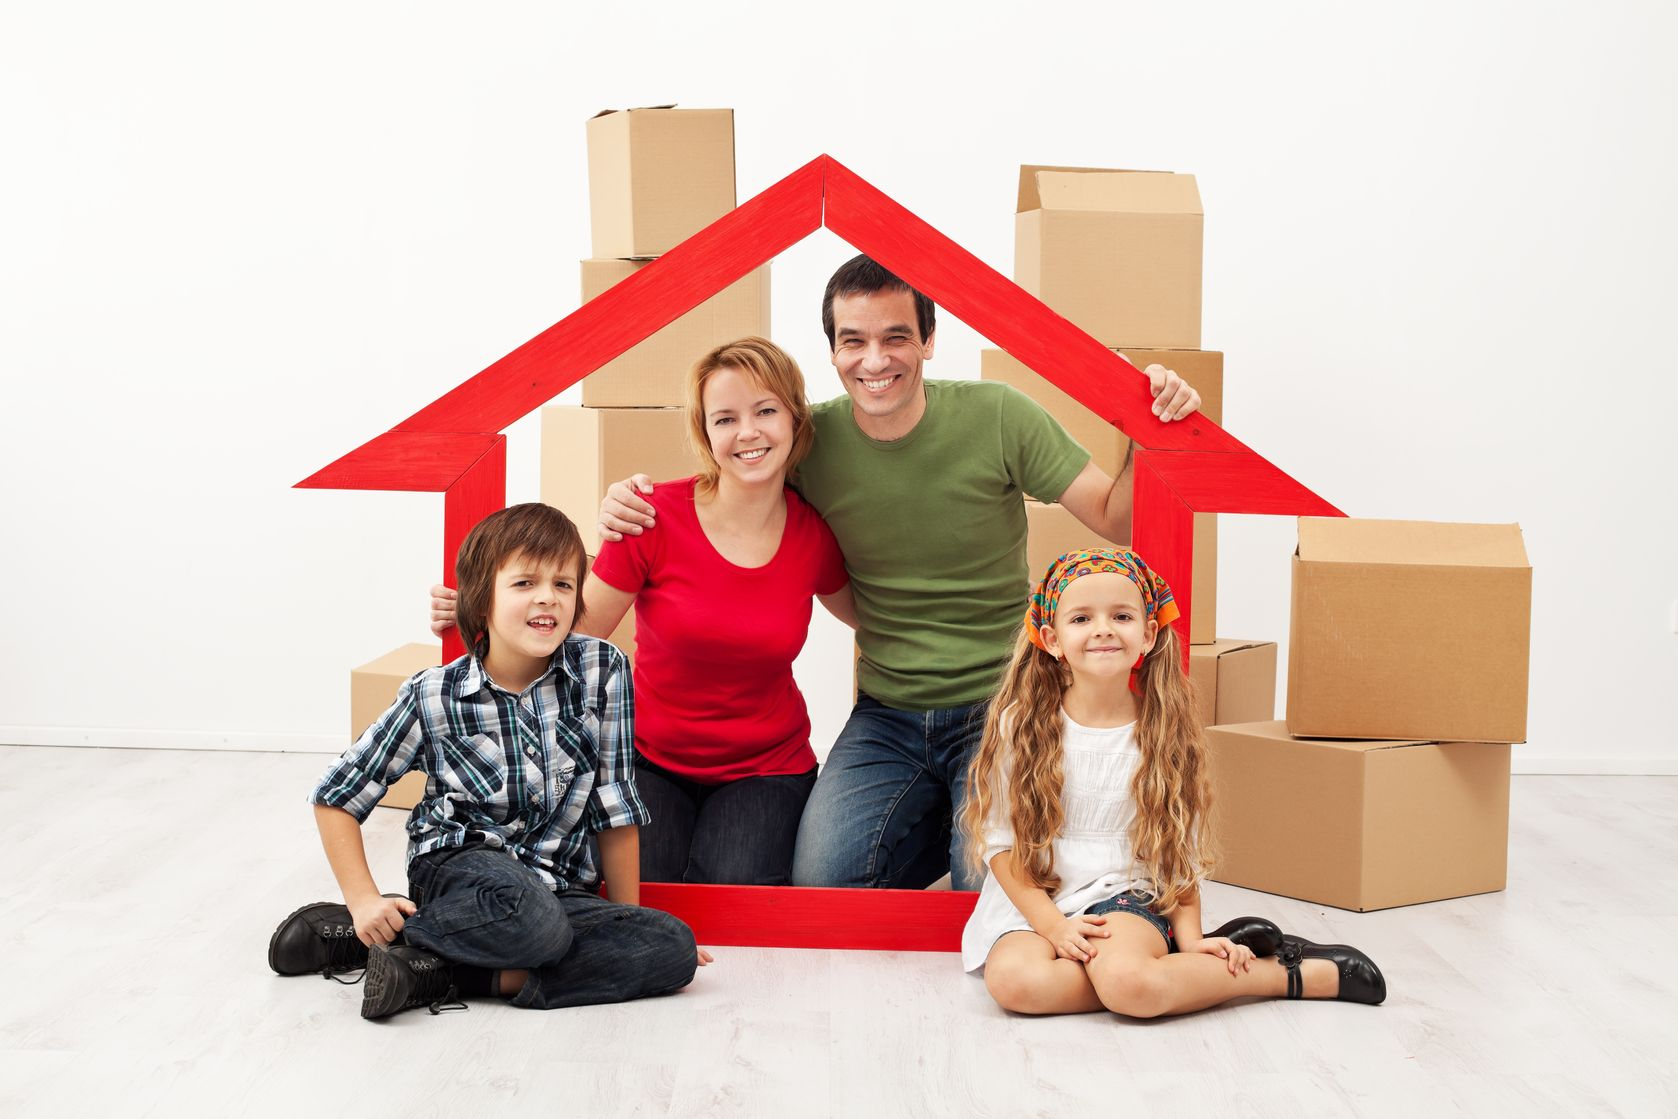 Northern California Homeowners Insurance